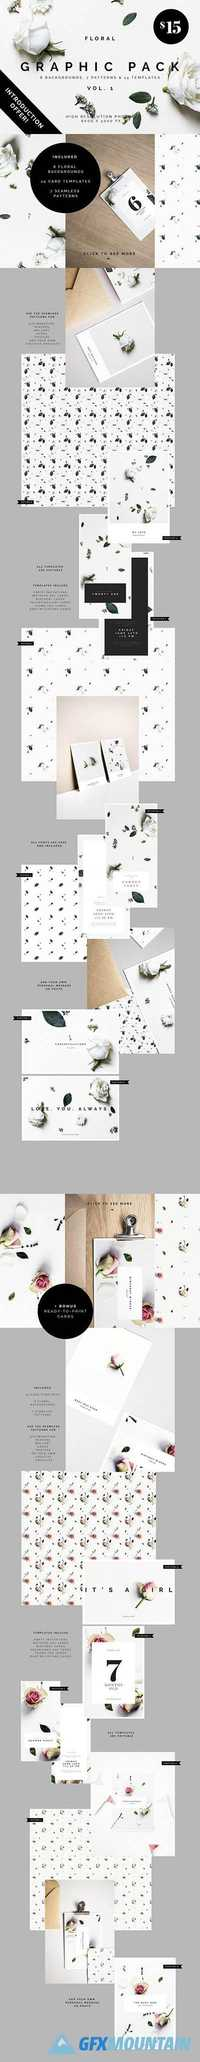 Floral Graphic Pack + bonus files 1802733